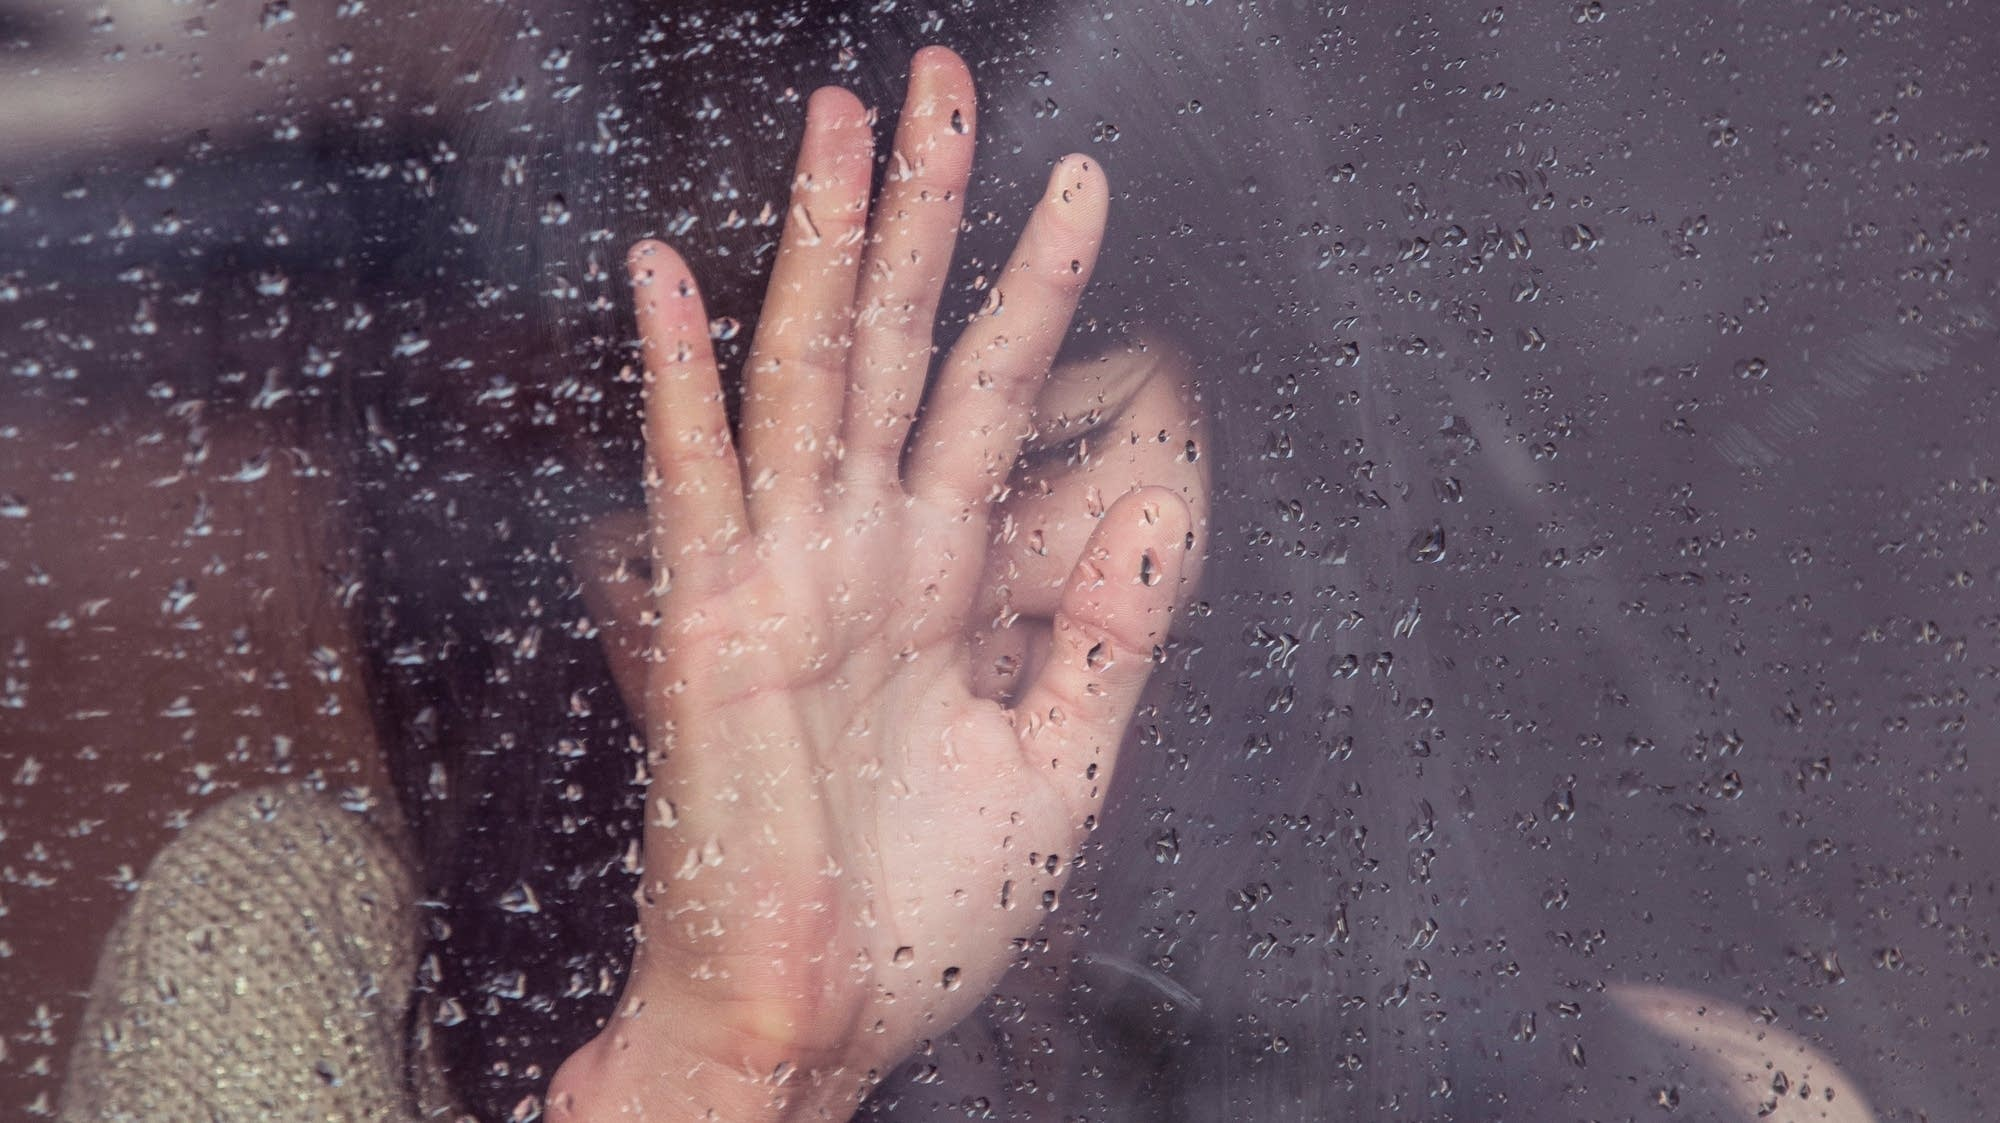 A sad woman presses her hand against a rainy window.